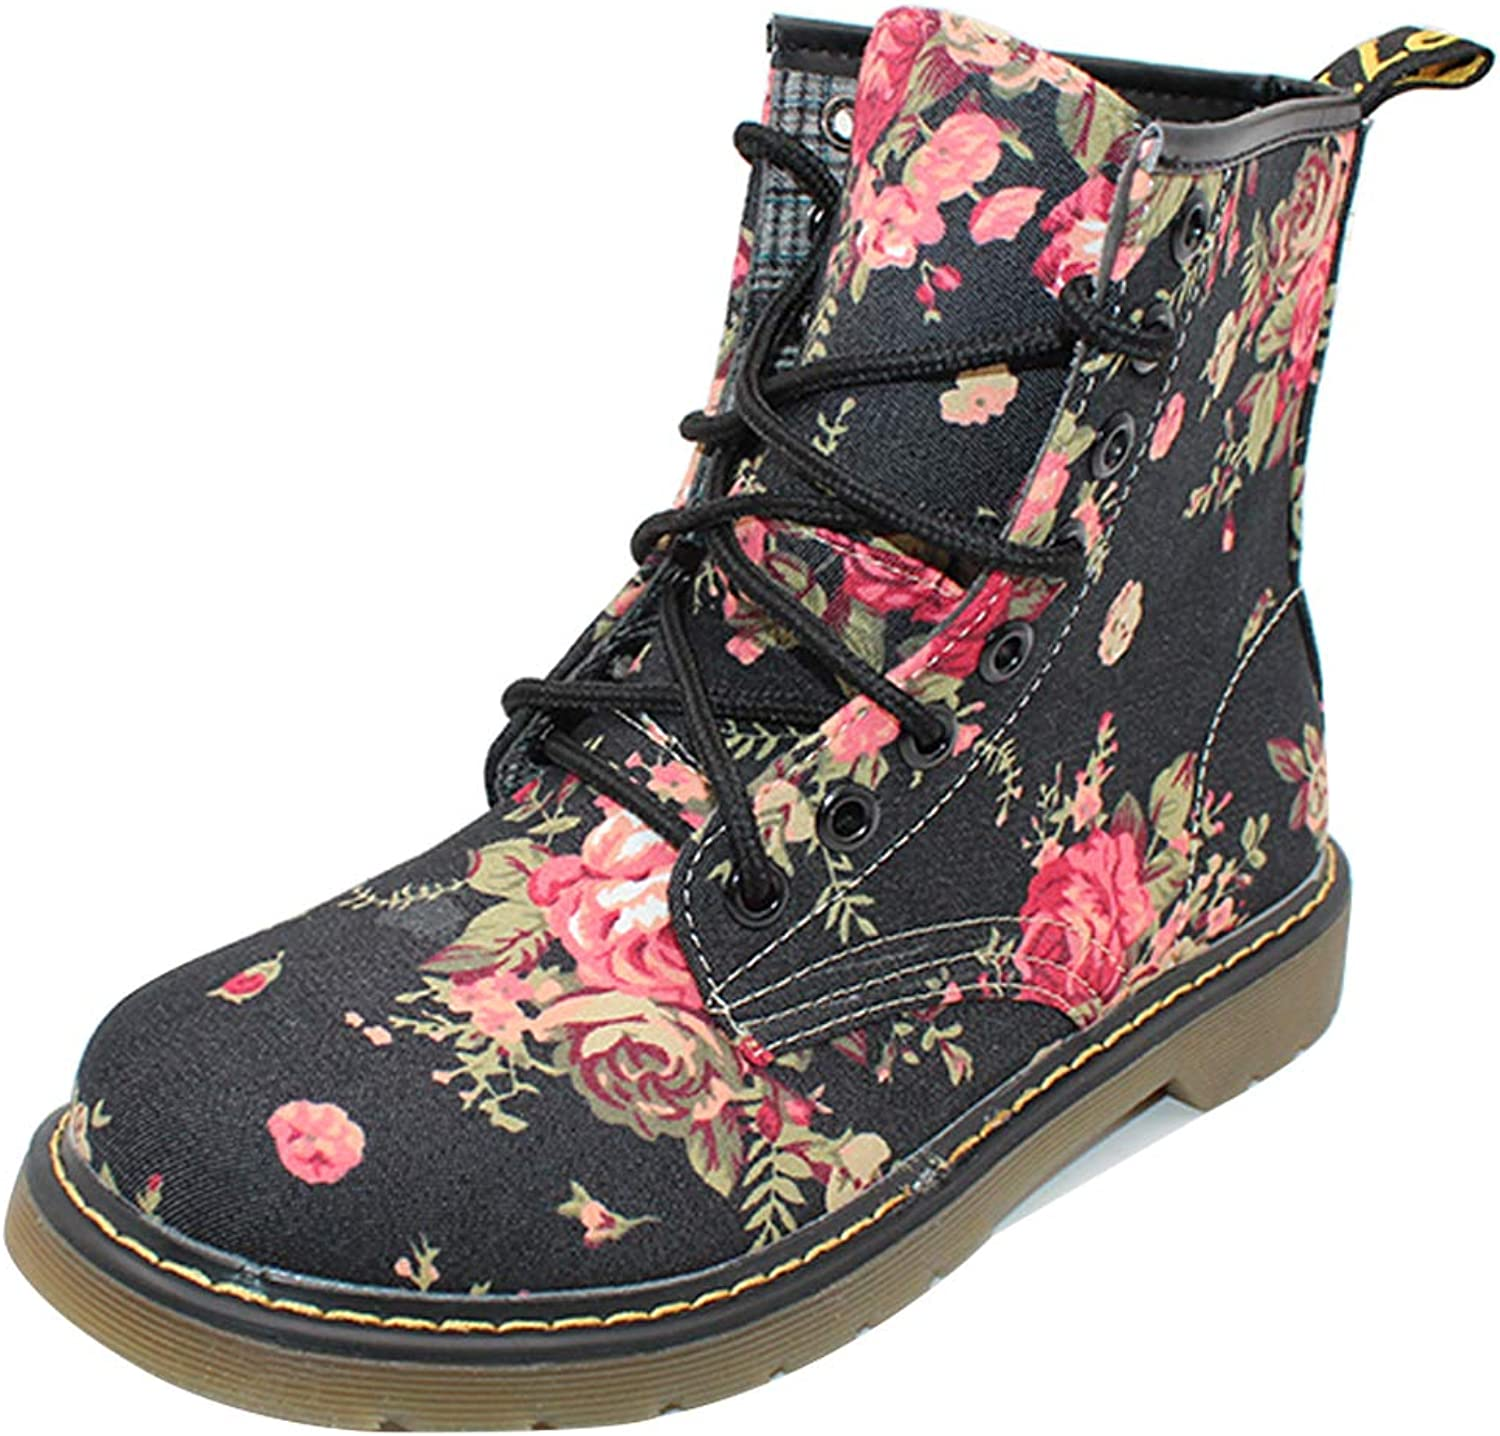 Uirend shoes Women Boots Mid Calf - Retro Ladies Flowers Floral Print Martin Lace-Up shoes Combat Ankle Boot Oxfords Flat